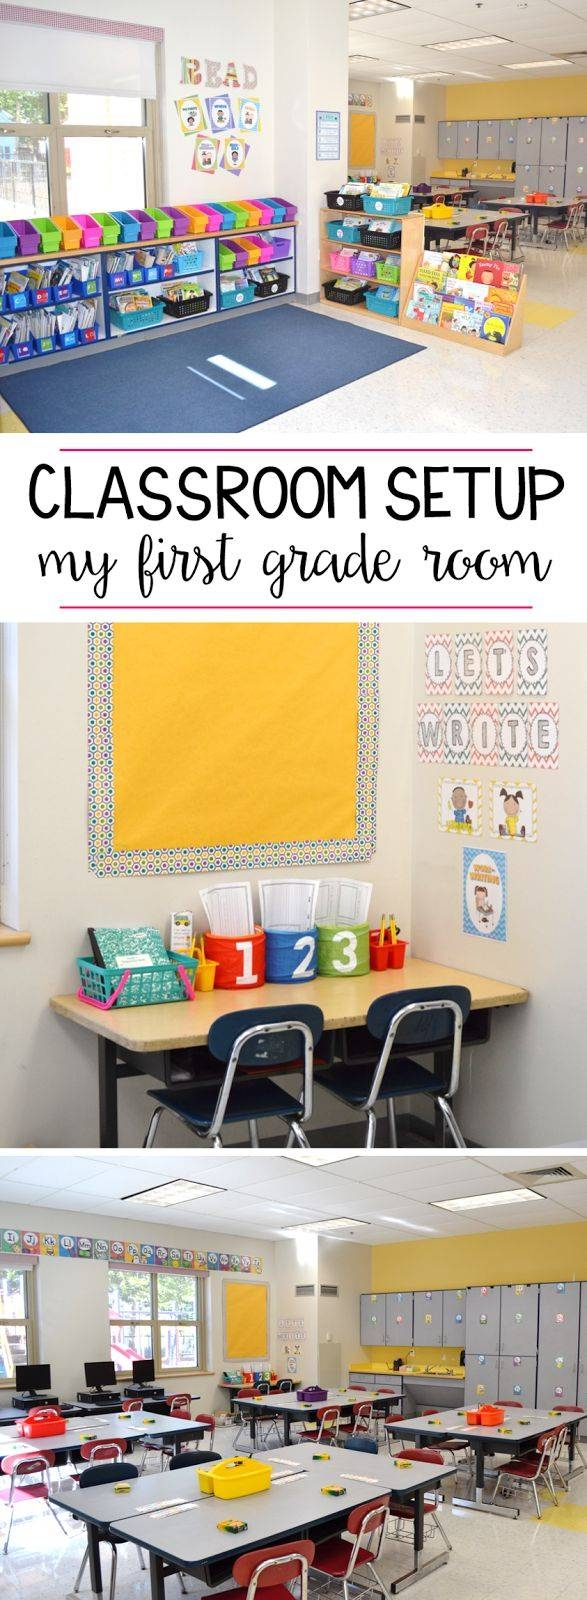 2018 Popular Preschool Classroom Wall Decals